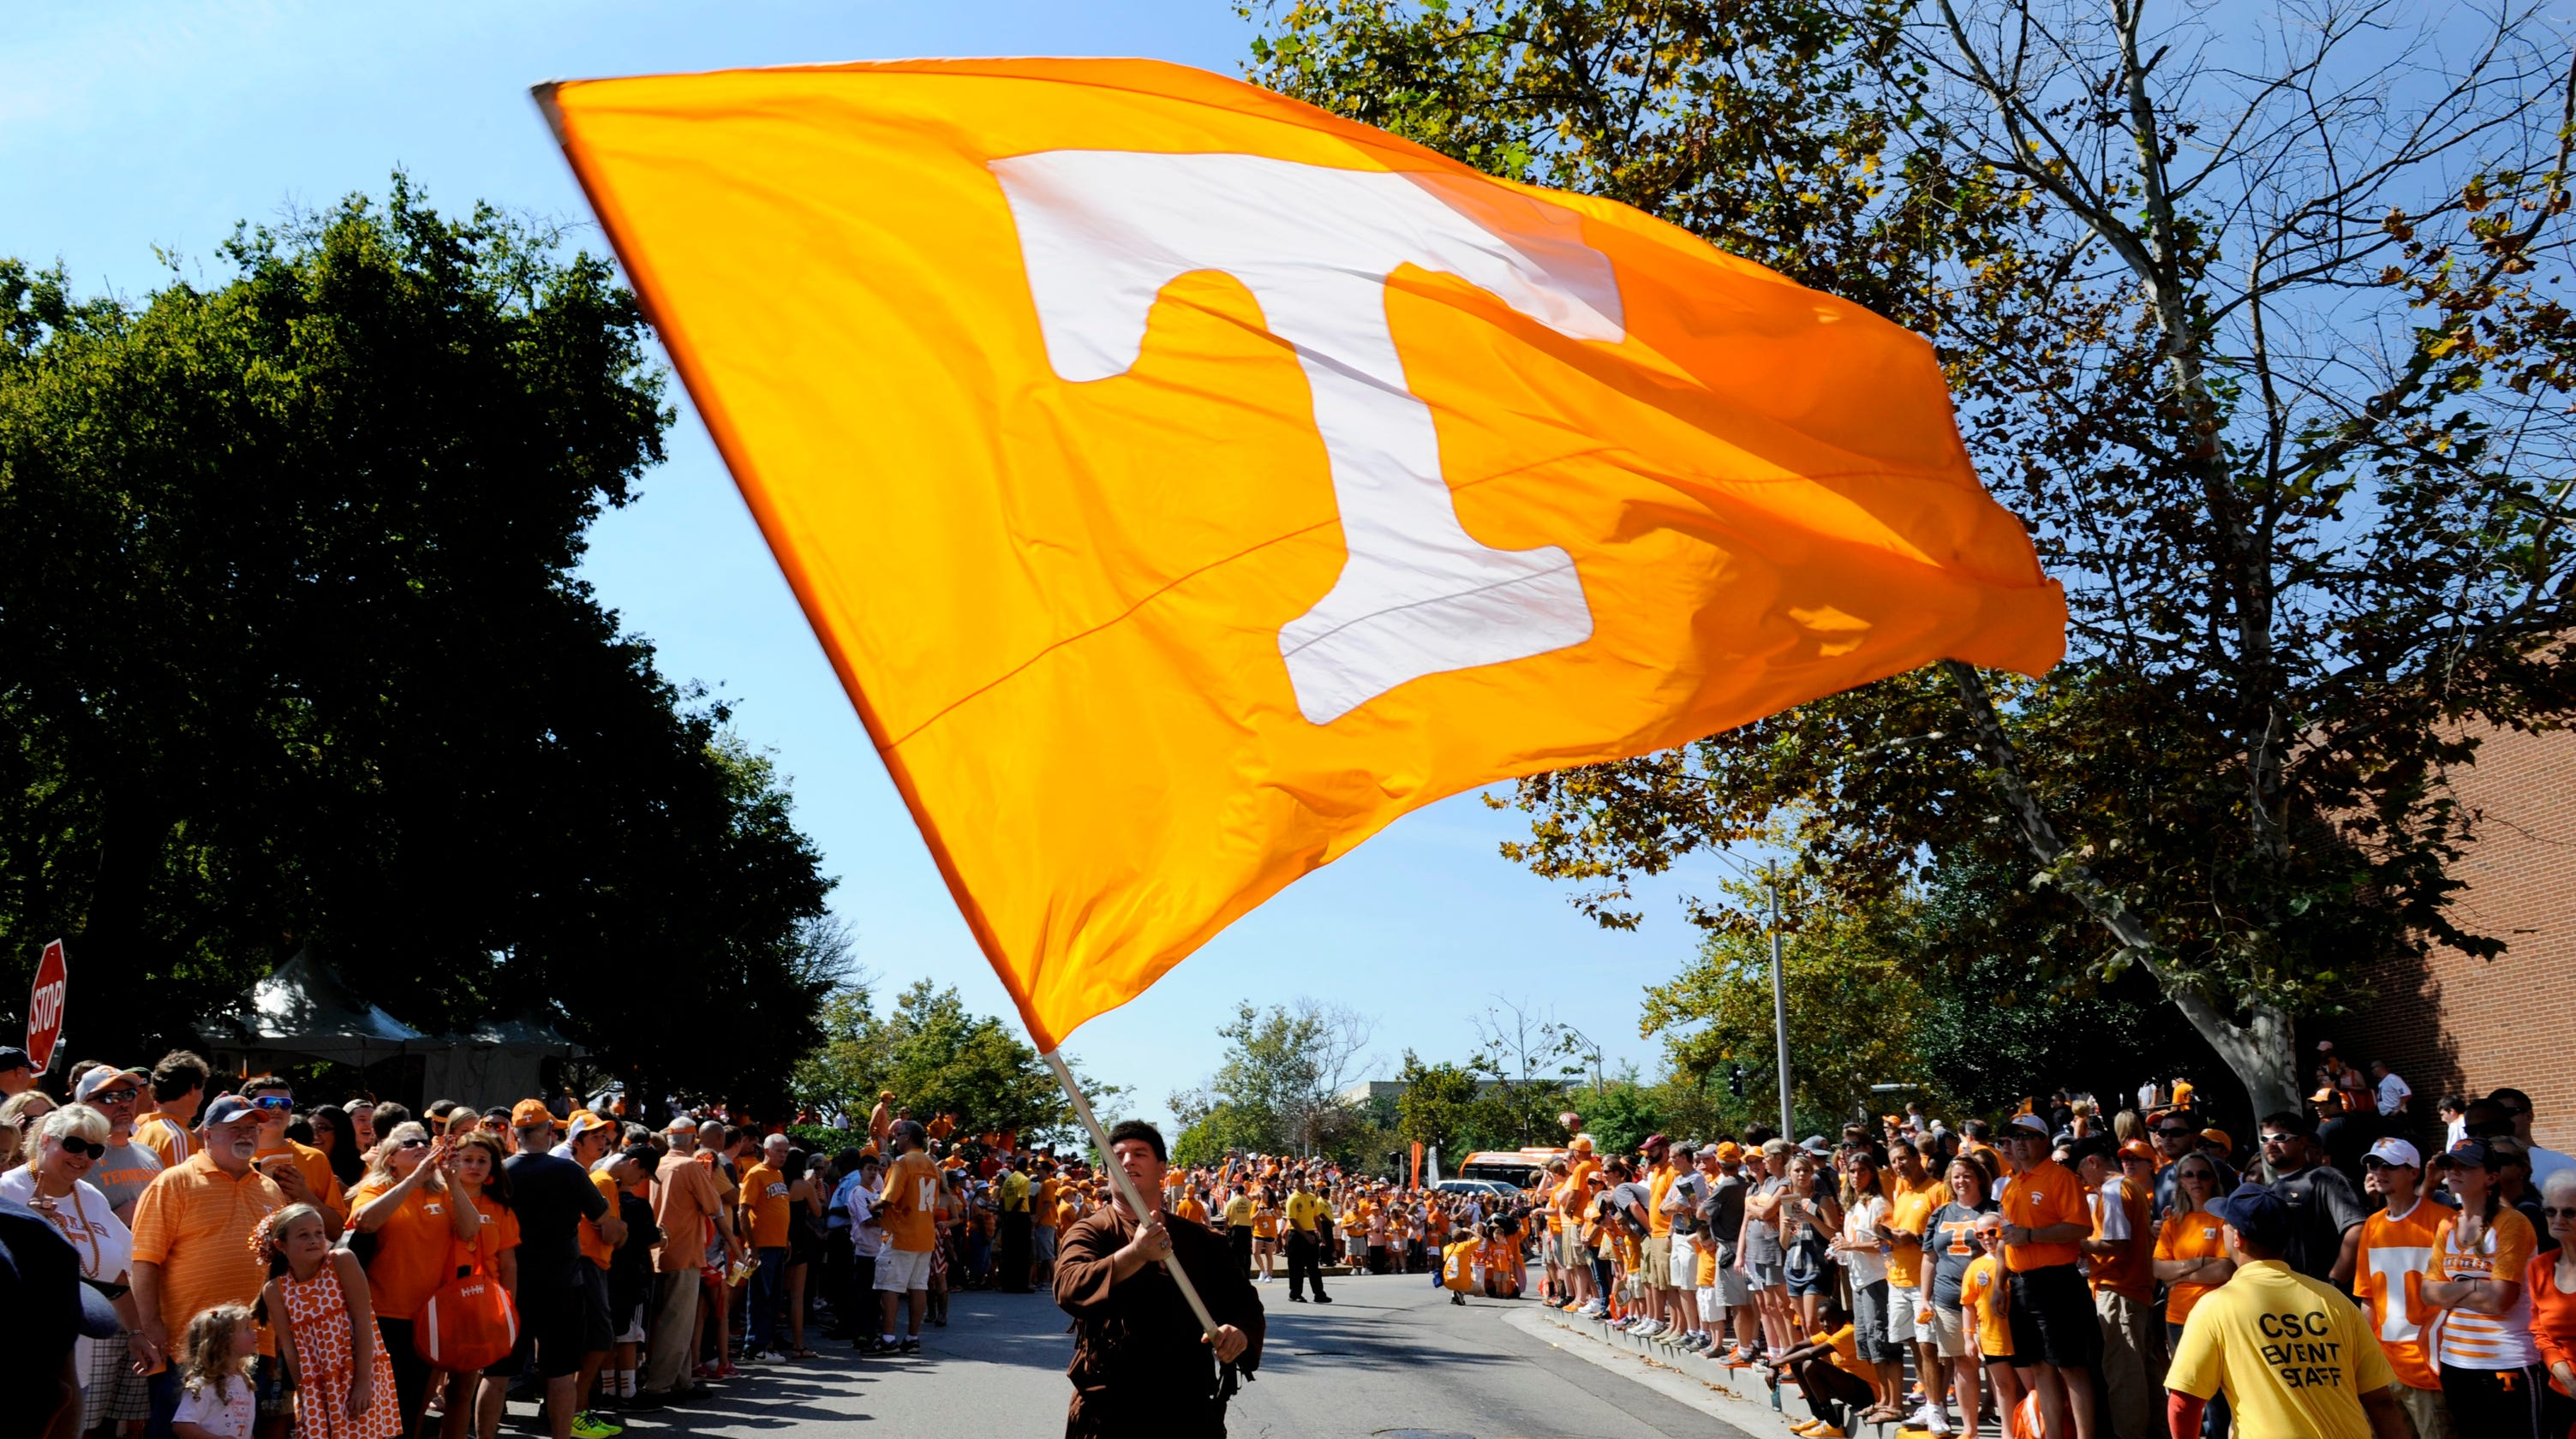 UT Vols fan guide: What to know about tickets, parking, Vol